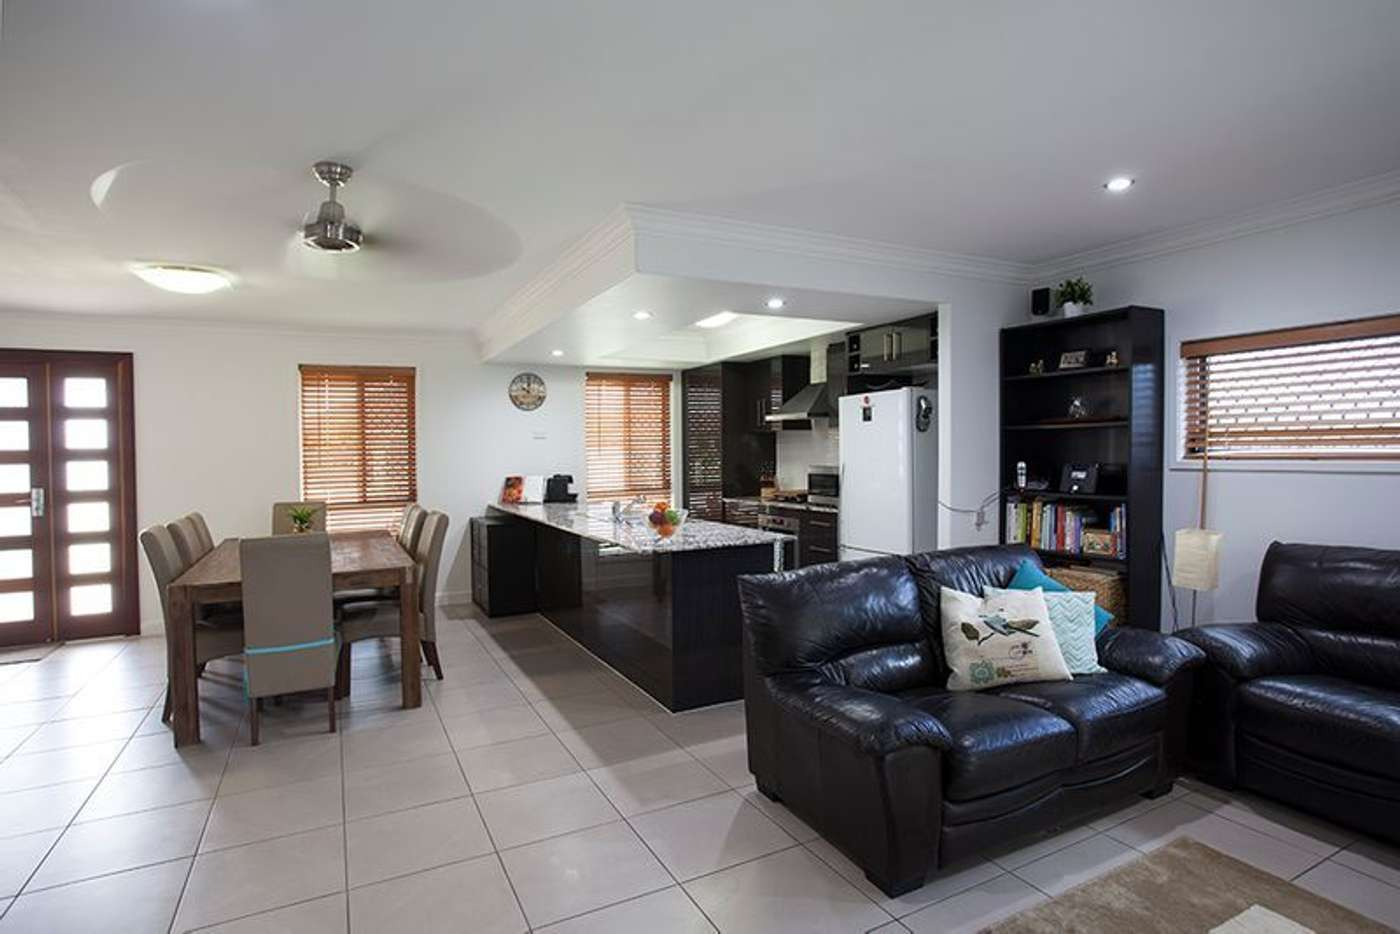 Main view of Homely house listing, 4 Alpine Street, Bald Hills QLD 4036